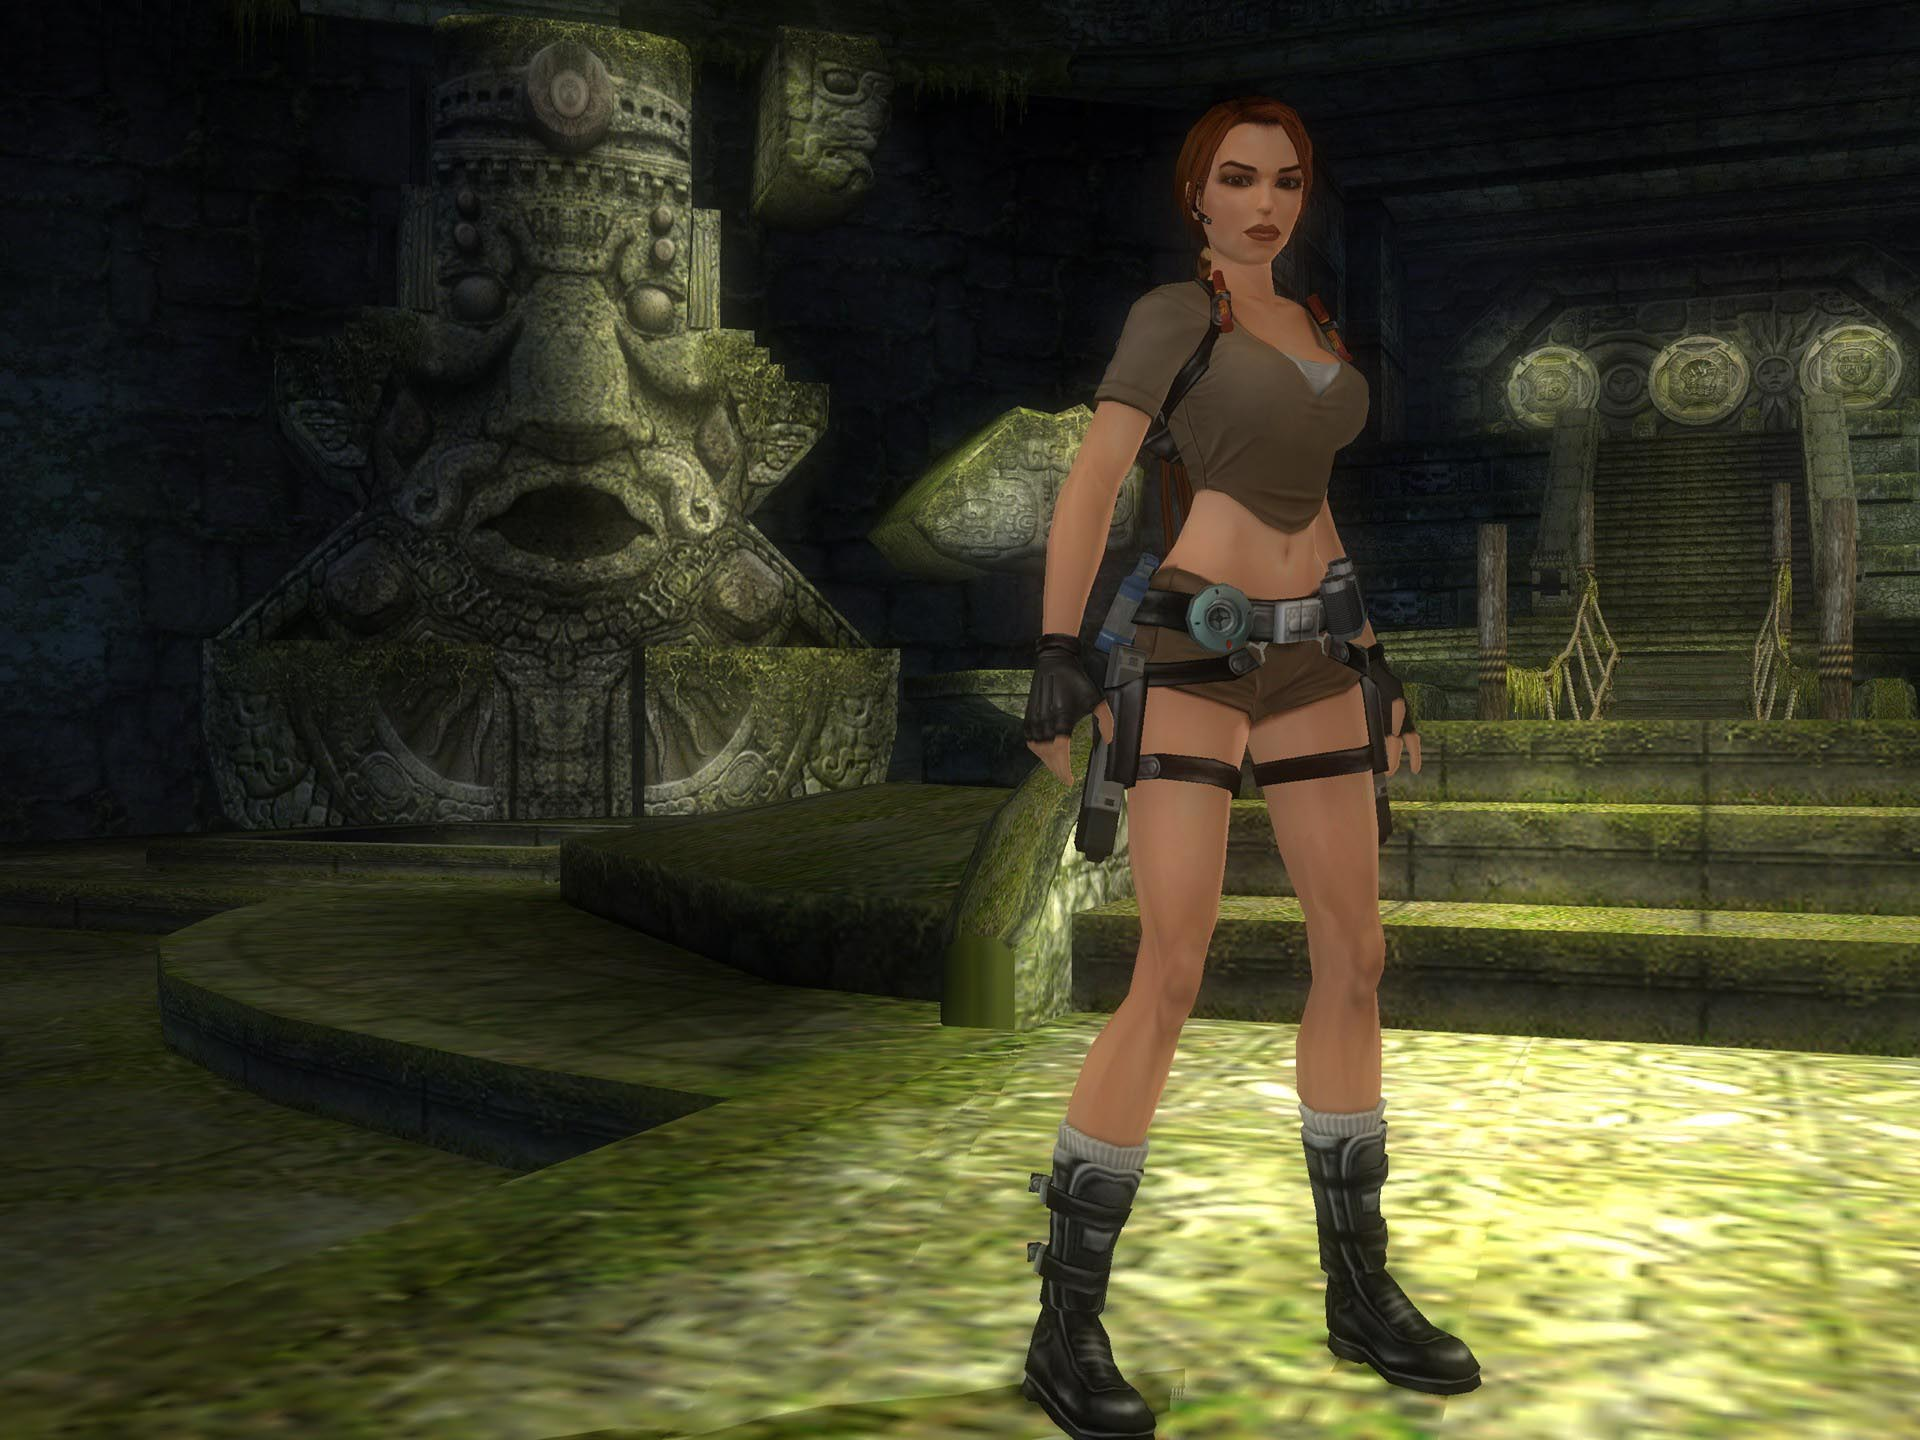 Lara croft and monster sex naked picture